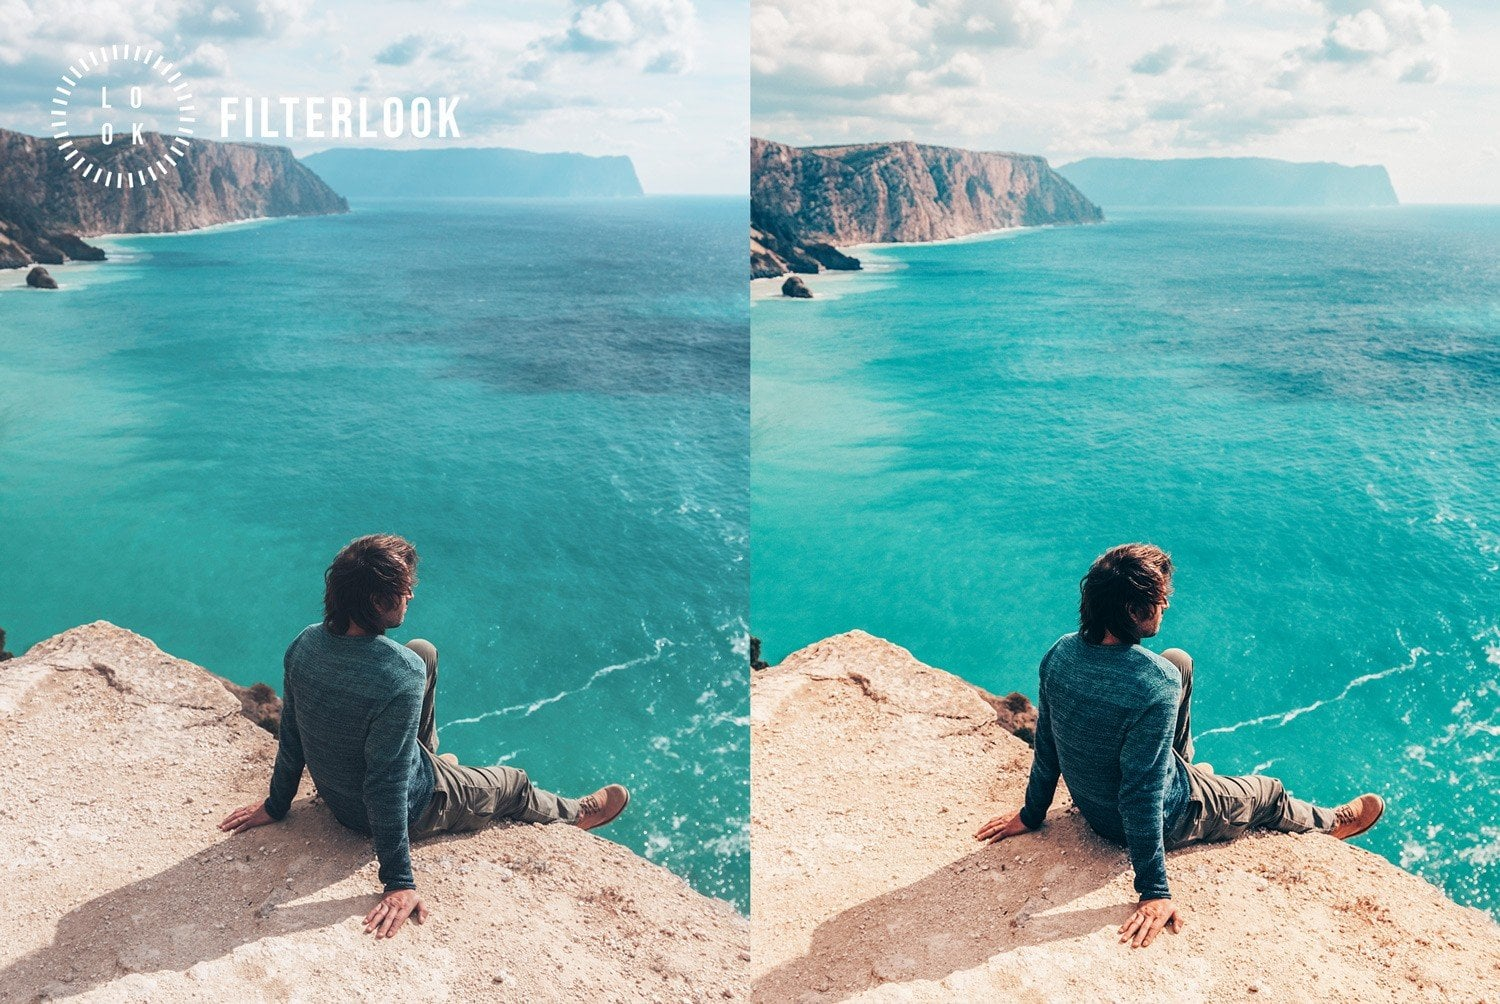 Free-Lightroom-Preset-Aqua-Preset-Before-and-After-Filterlook.com